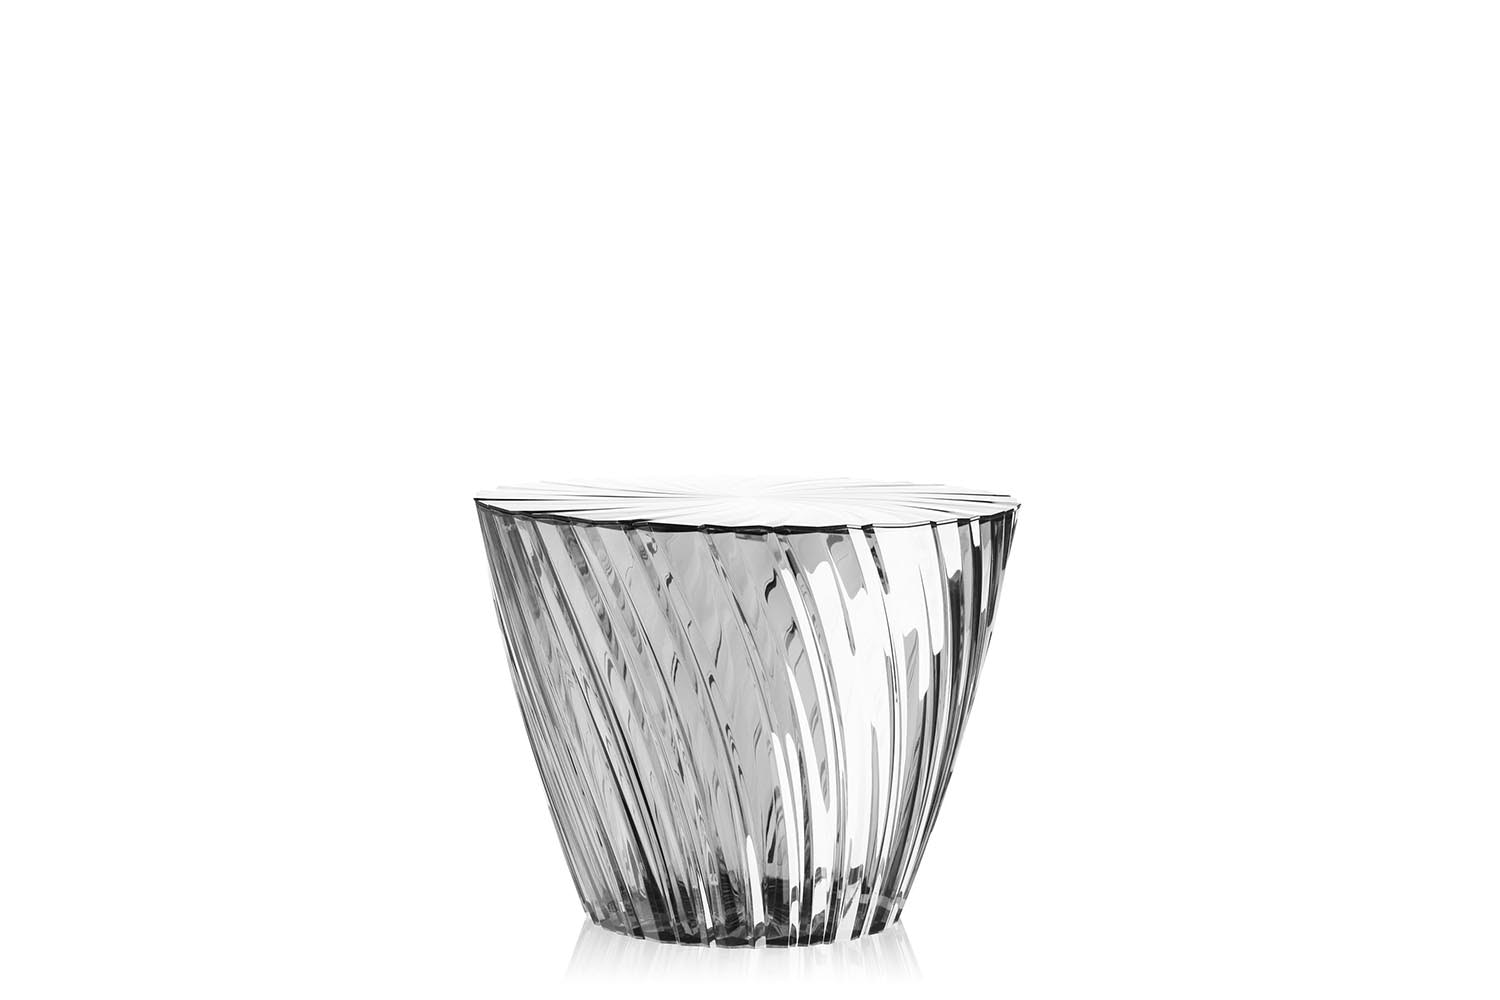 Sparkle Side Table by Tokujin Yoshioka for Kartell